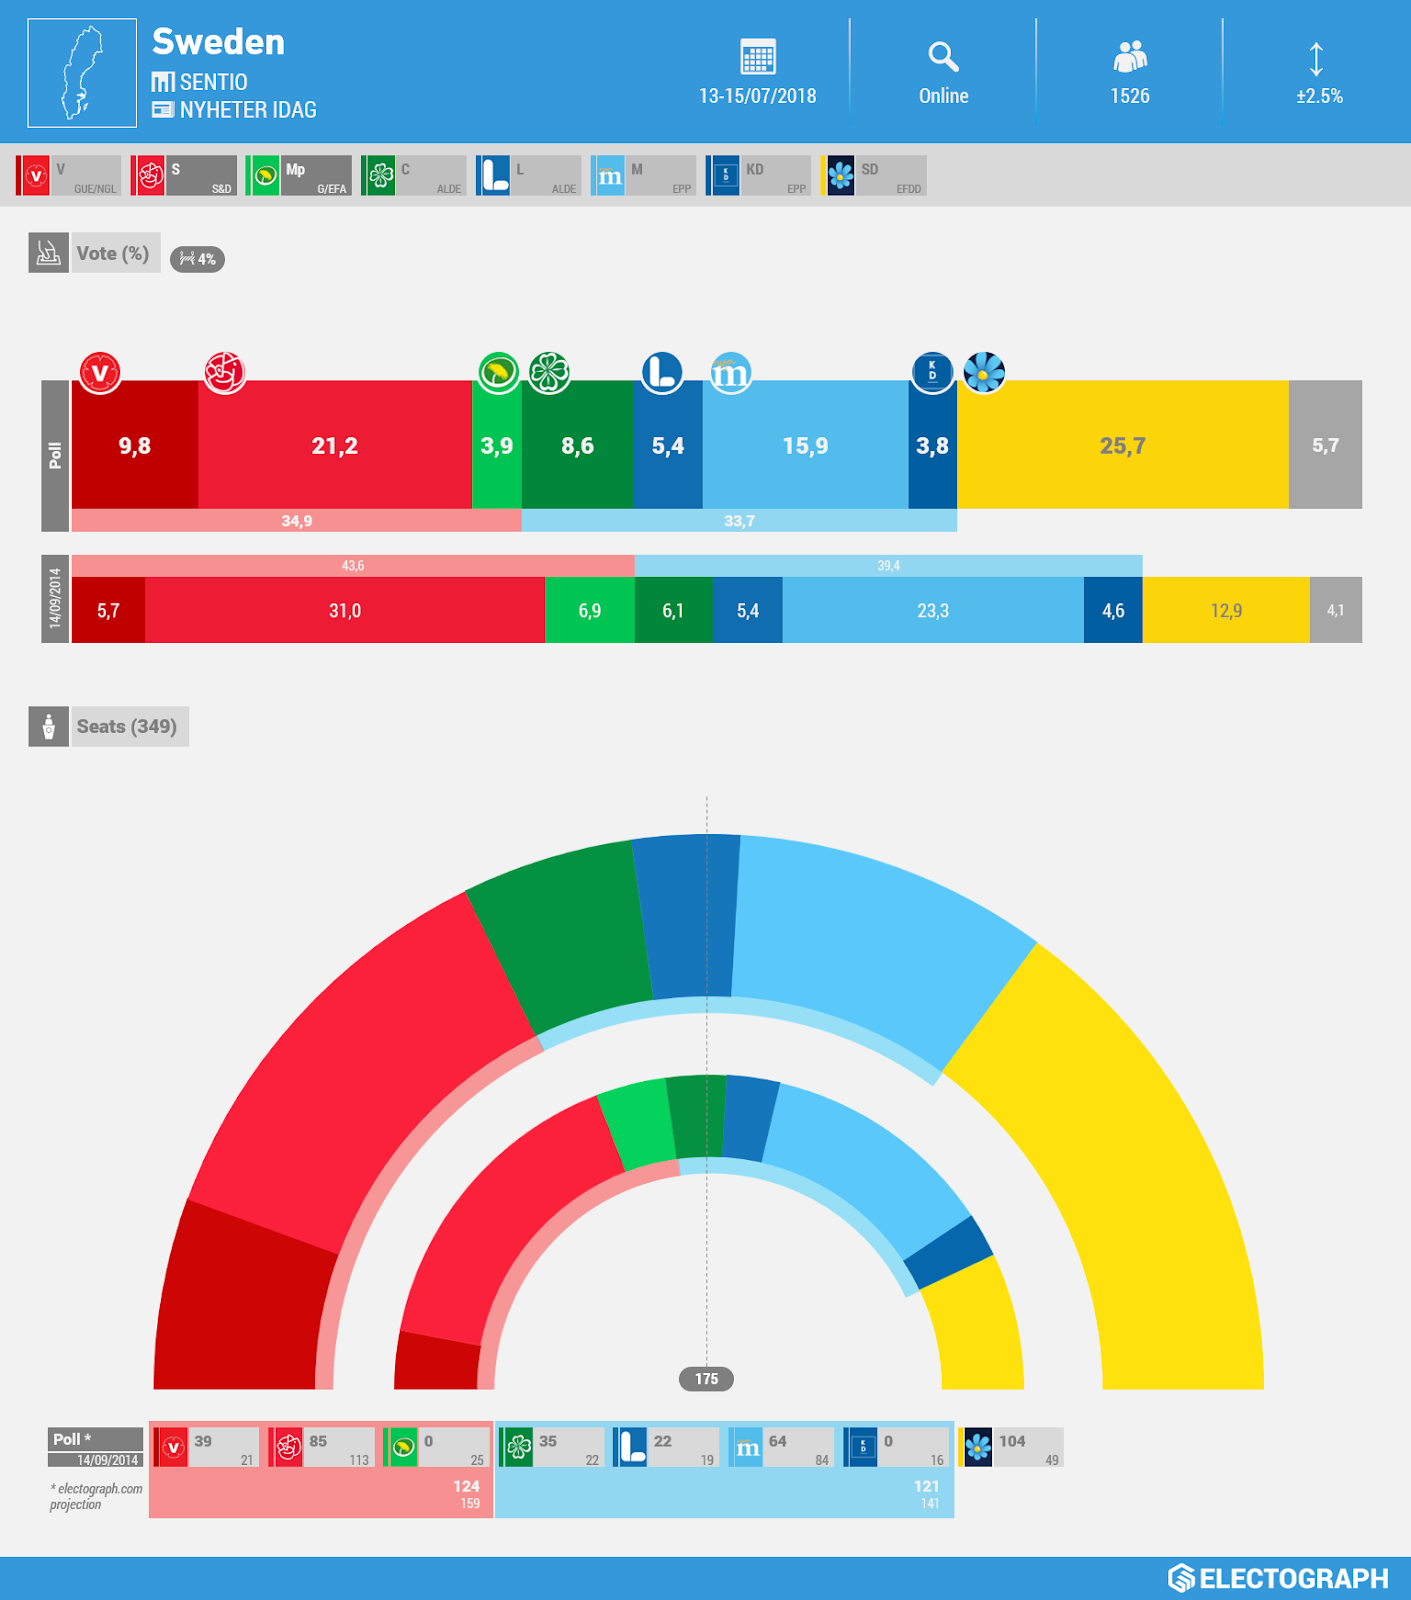 SWEDEN: YouGov poll chart for Metro, July 2018